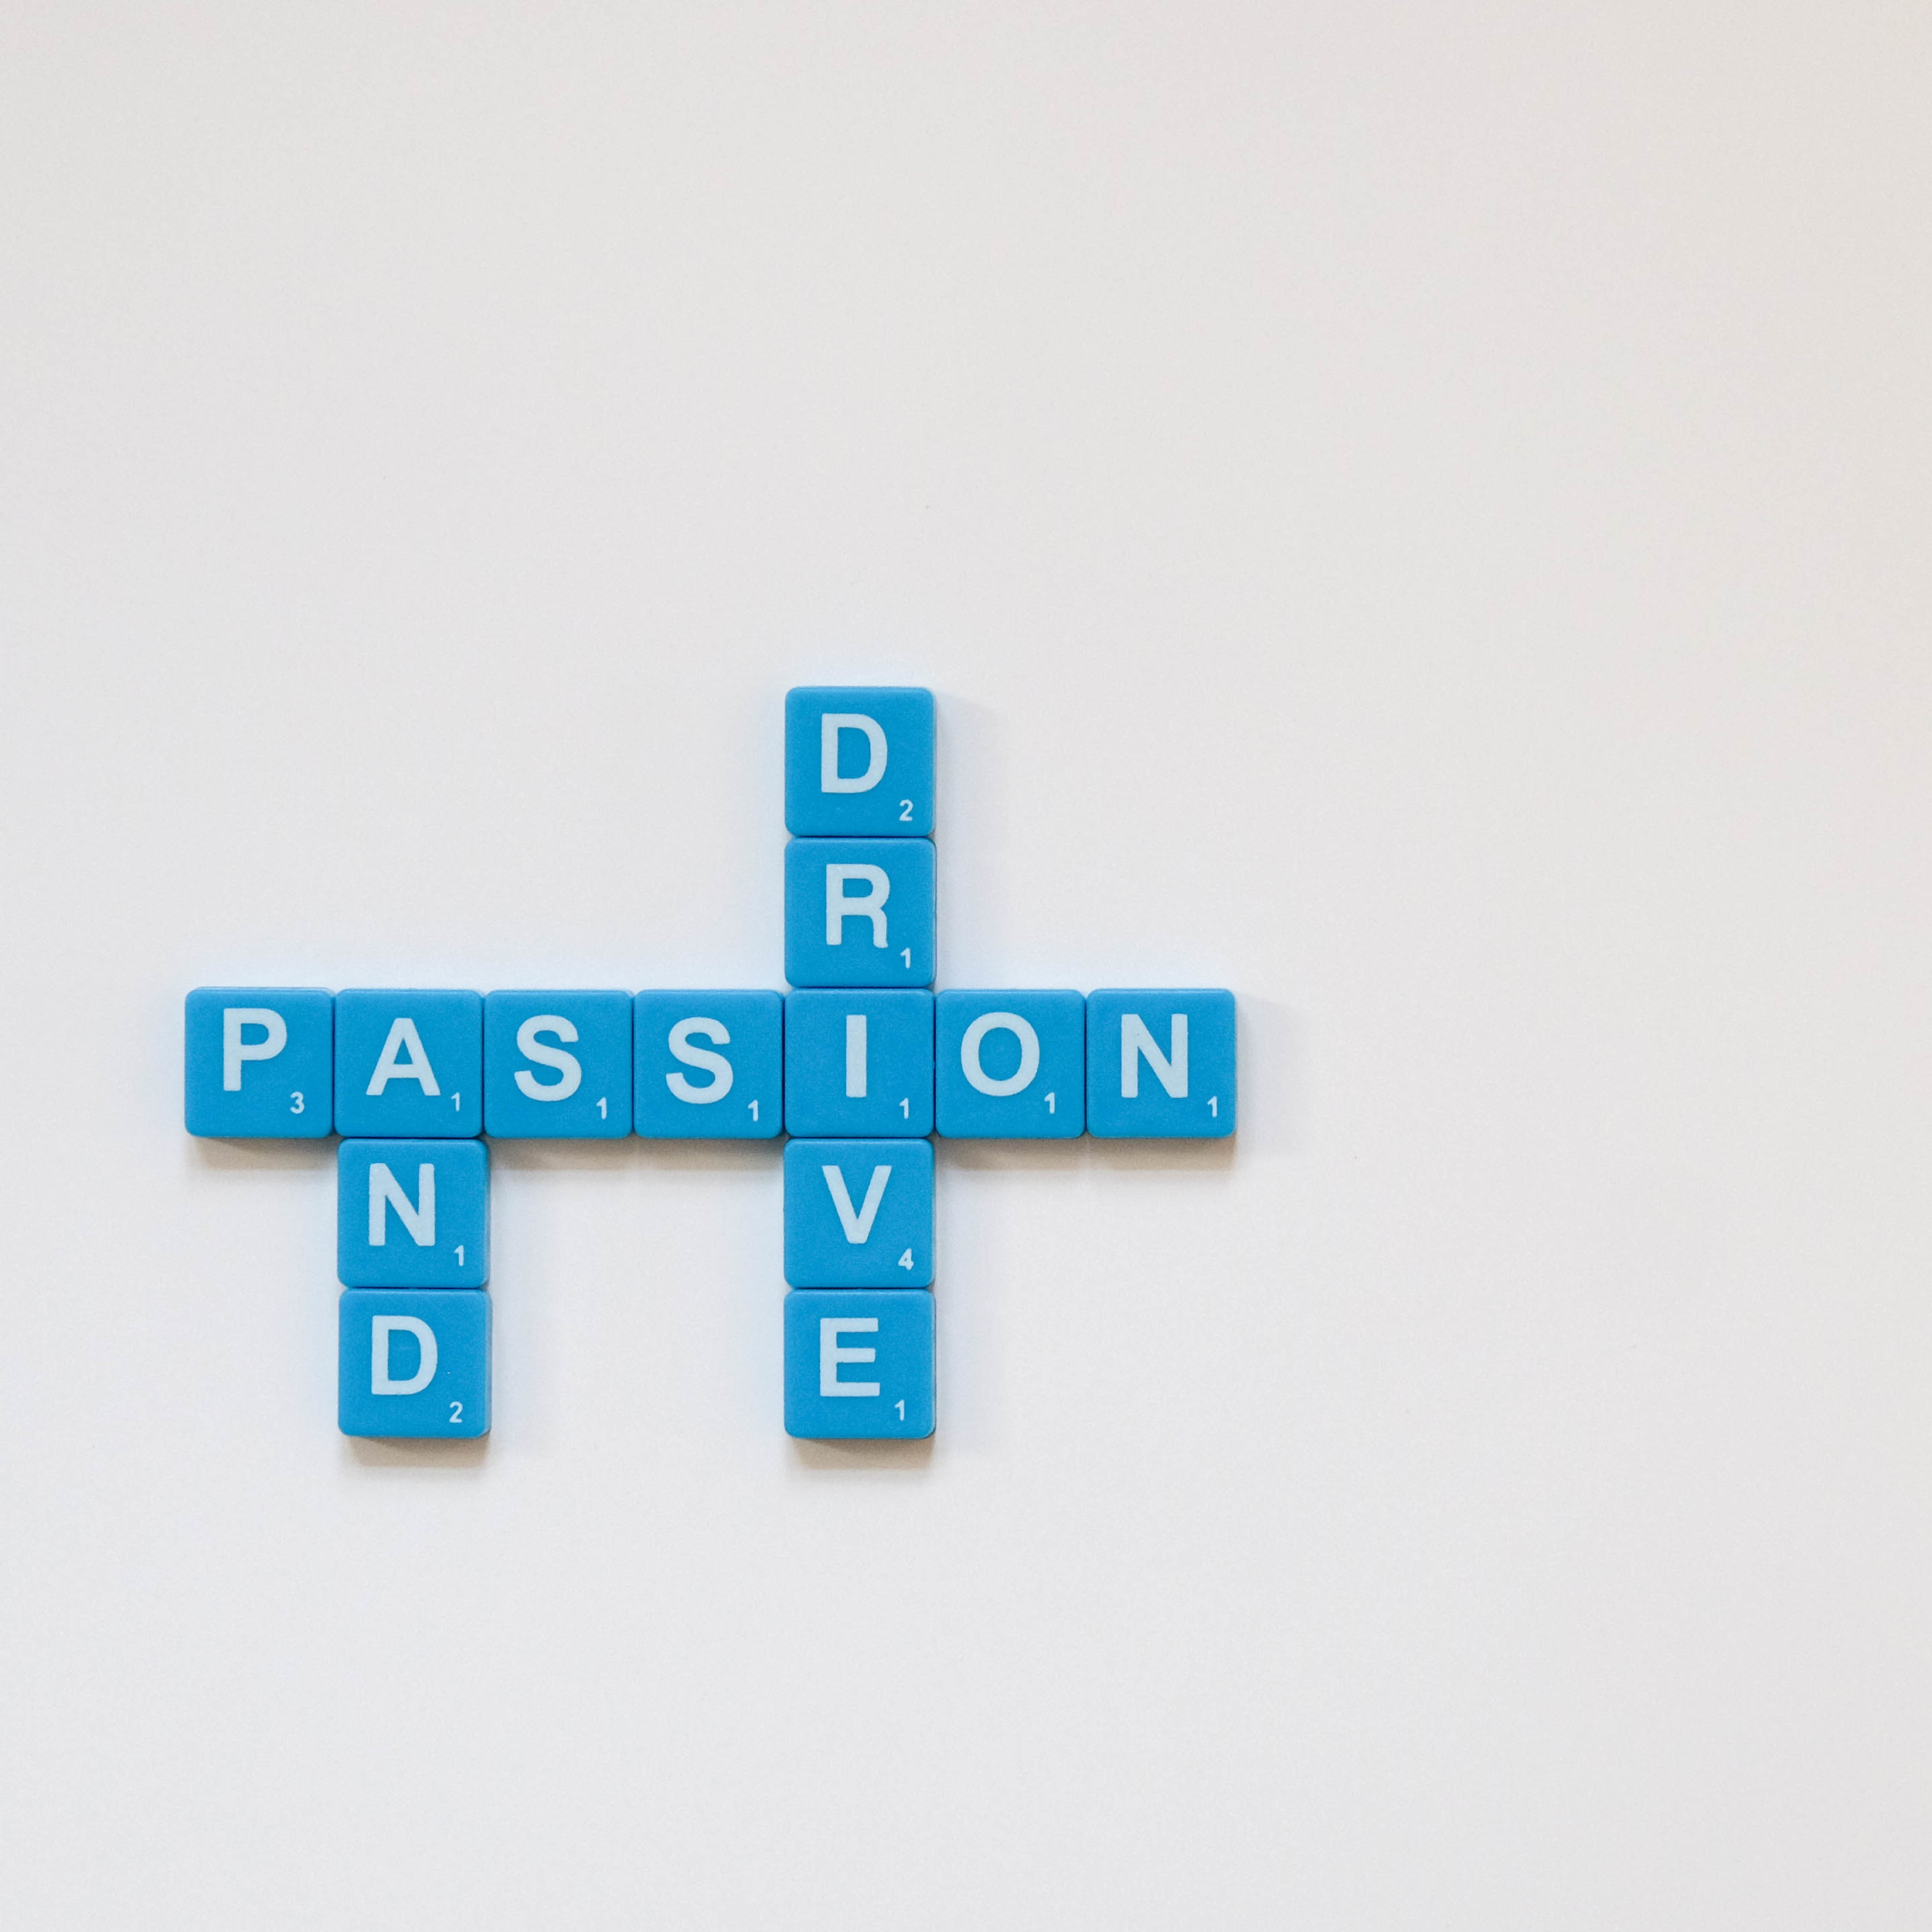 Image: Passion and drive is key in the workplace, regardless of age.